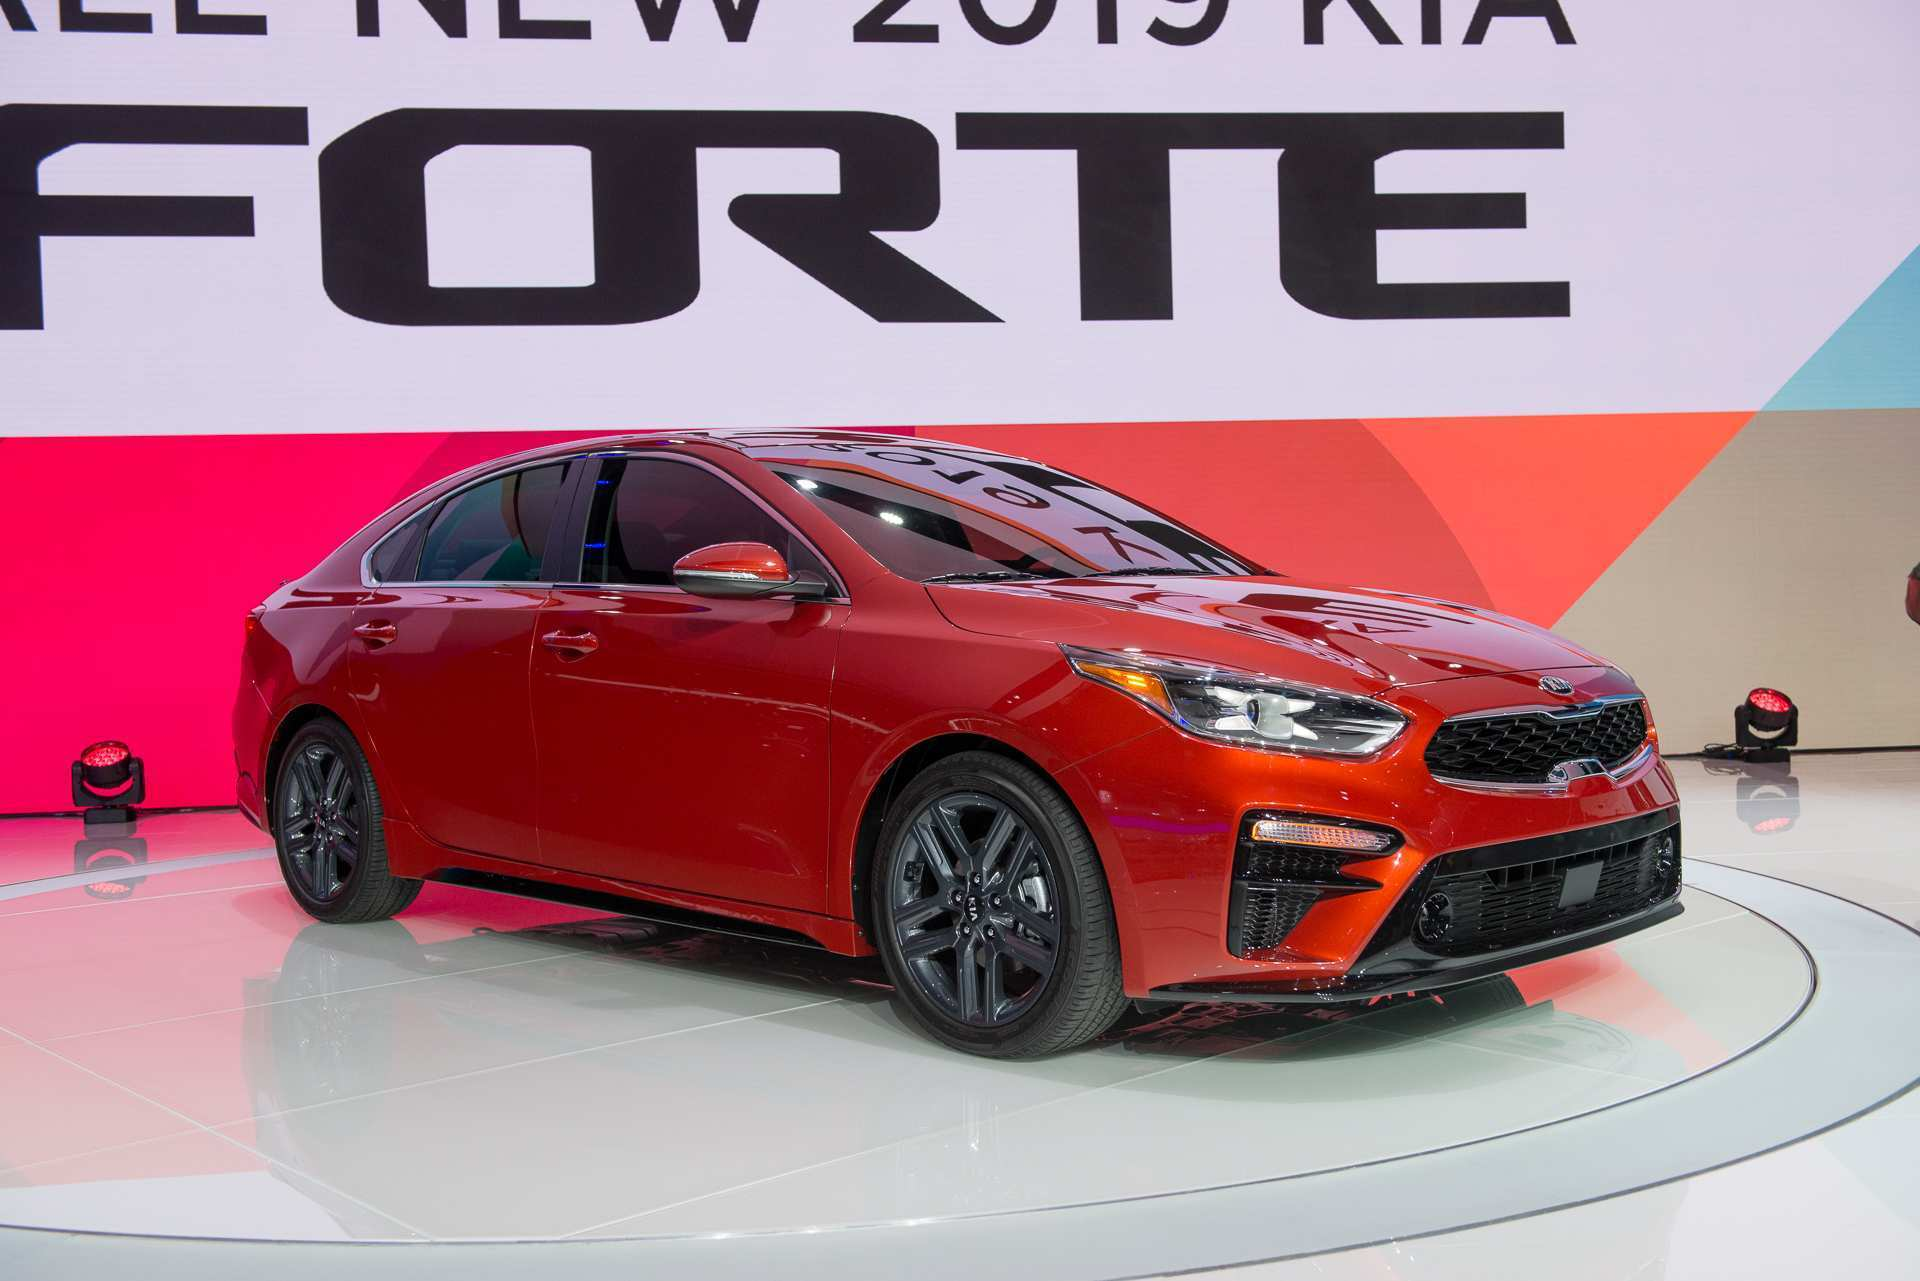 82 A Kia Forte Koup 2019 Price Design And Review